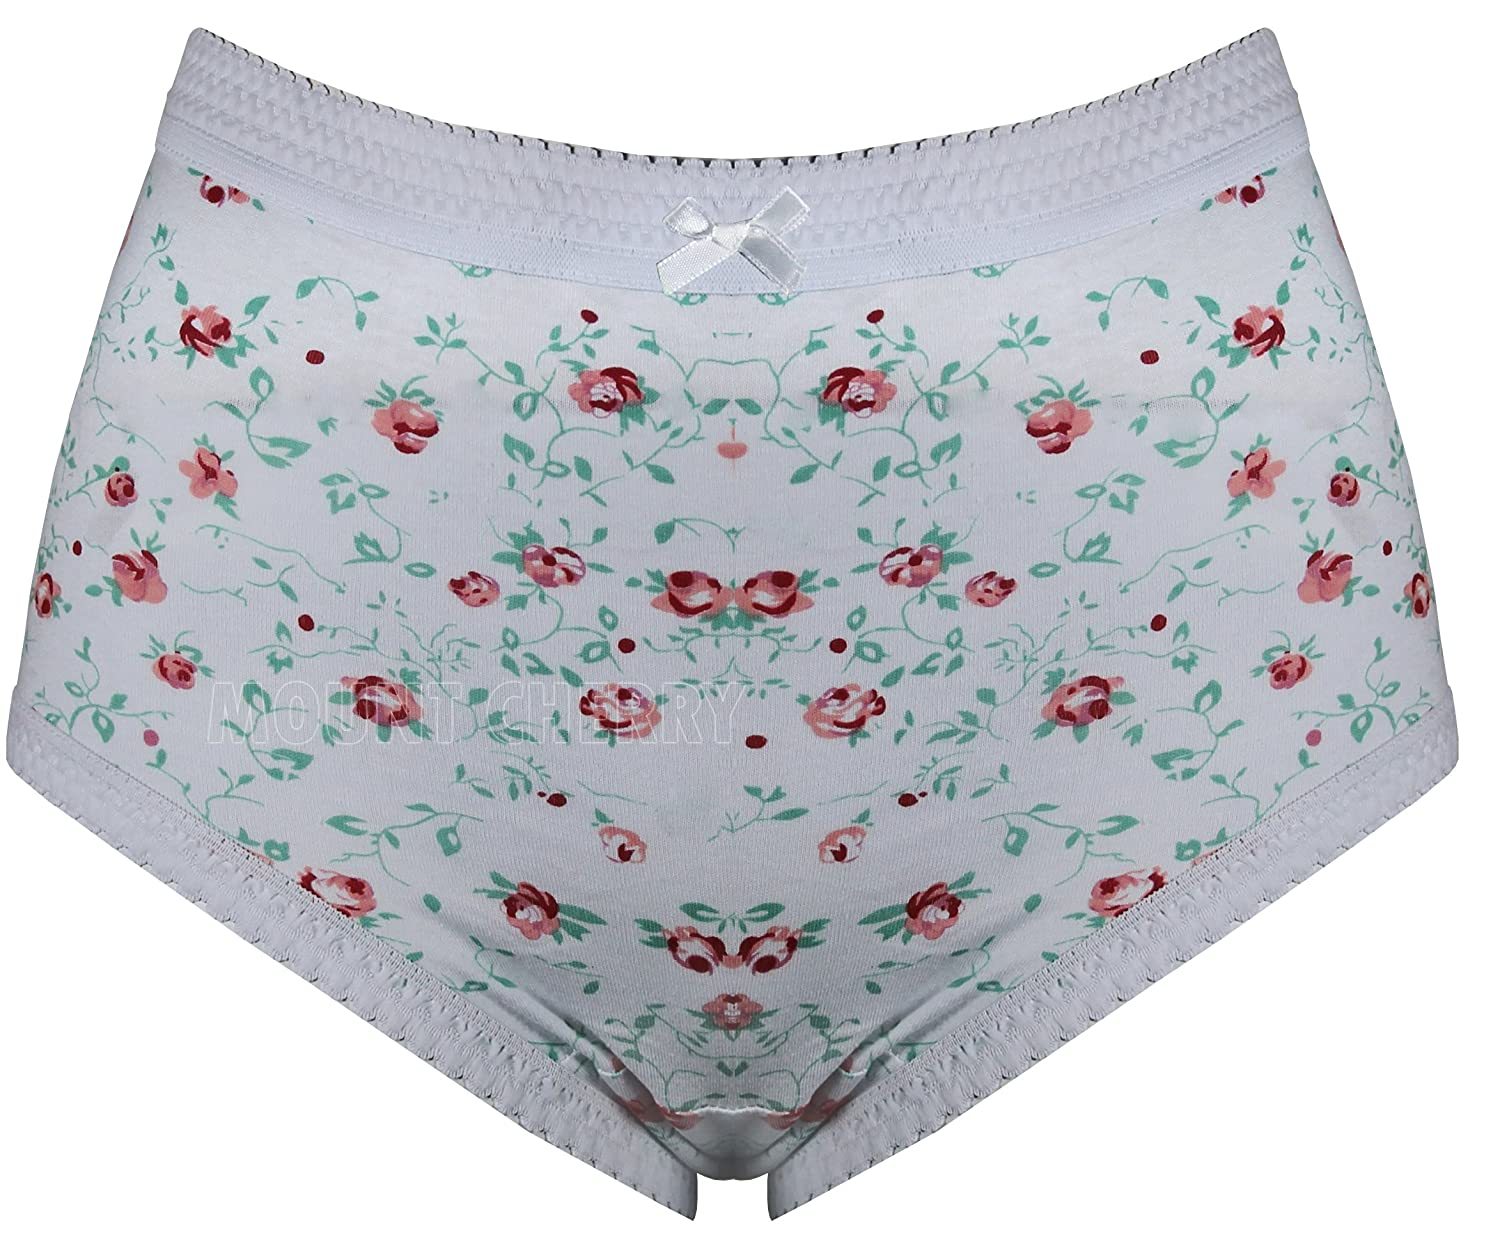 Womens Full Briefs Multi Pack Ladies Underwear Pure Cotton Floral ...